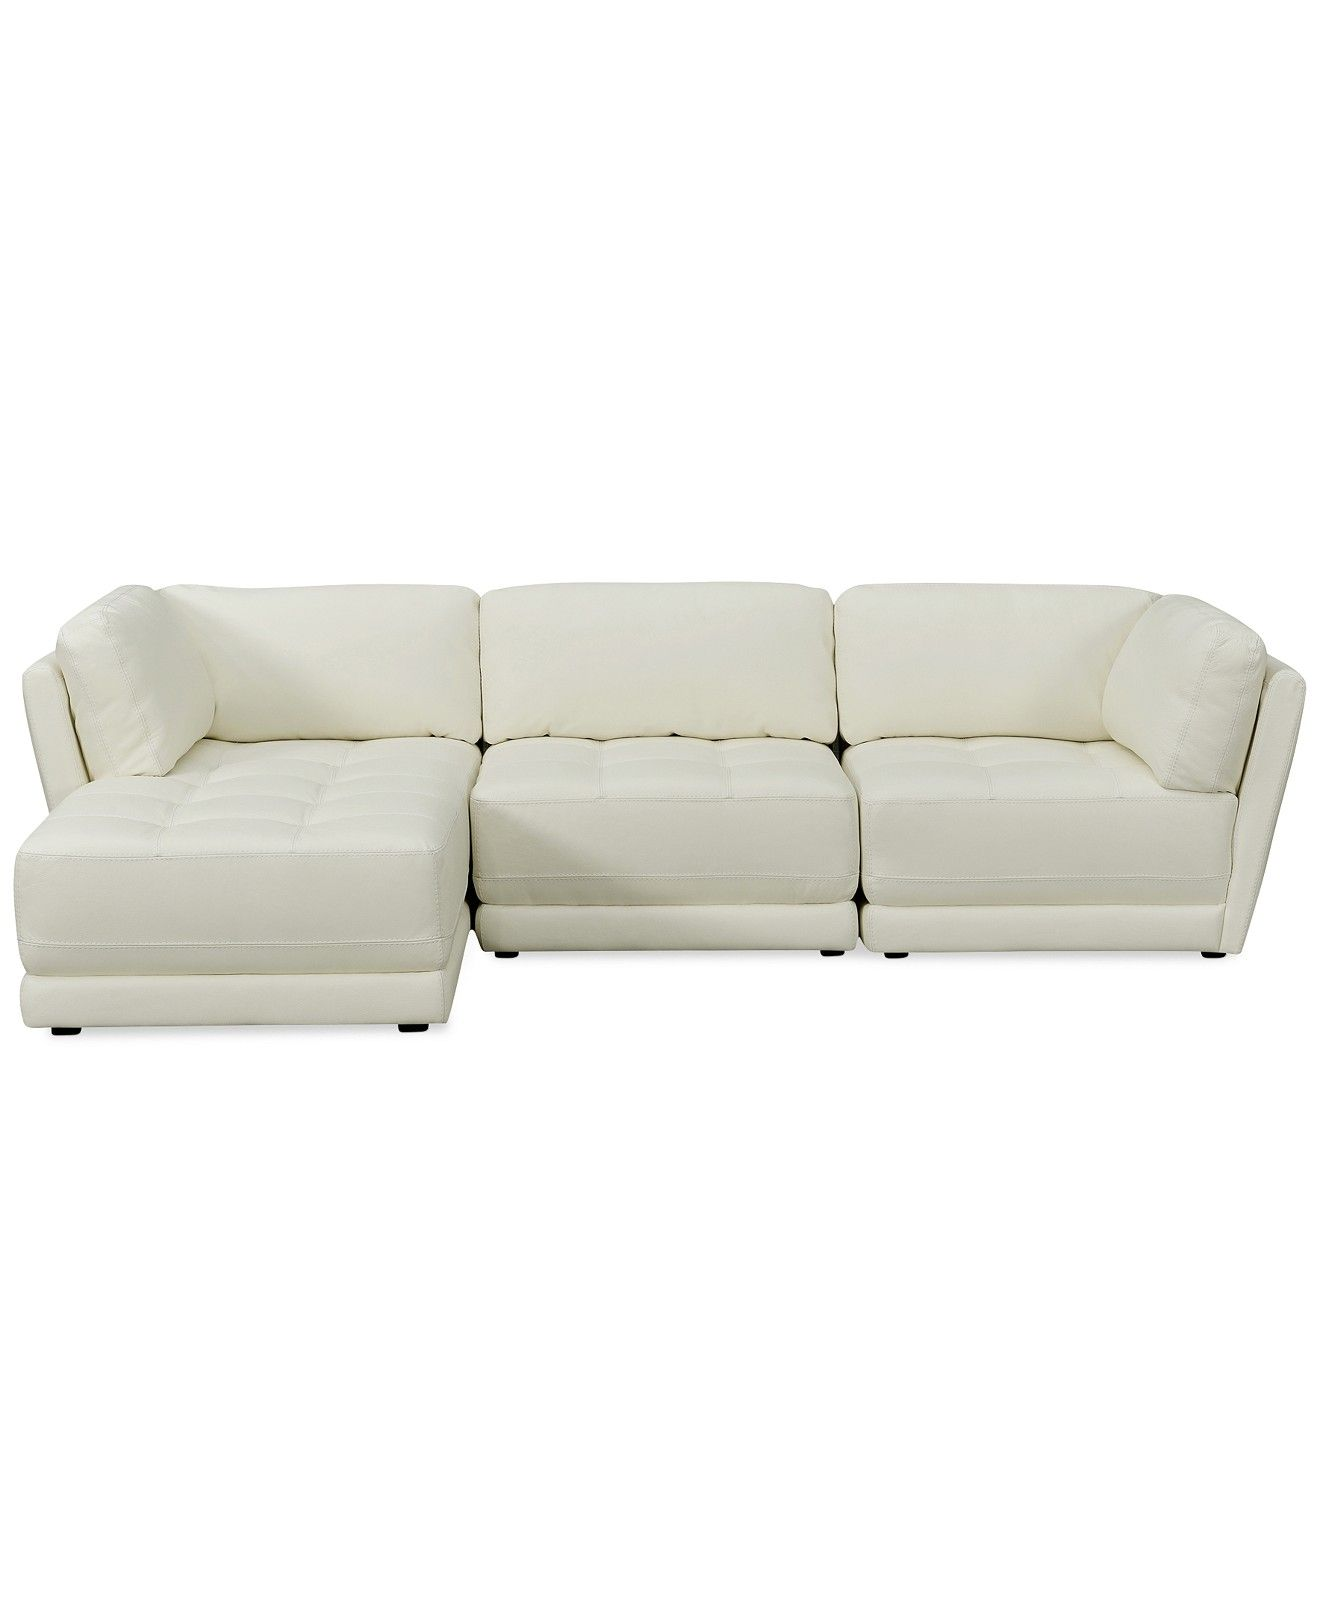 Traverso Leather 3 Piece Chaise Modular Sectional Sofa Couches